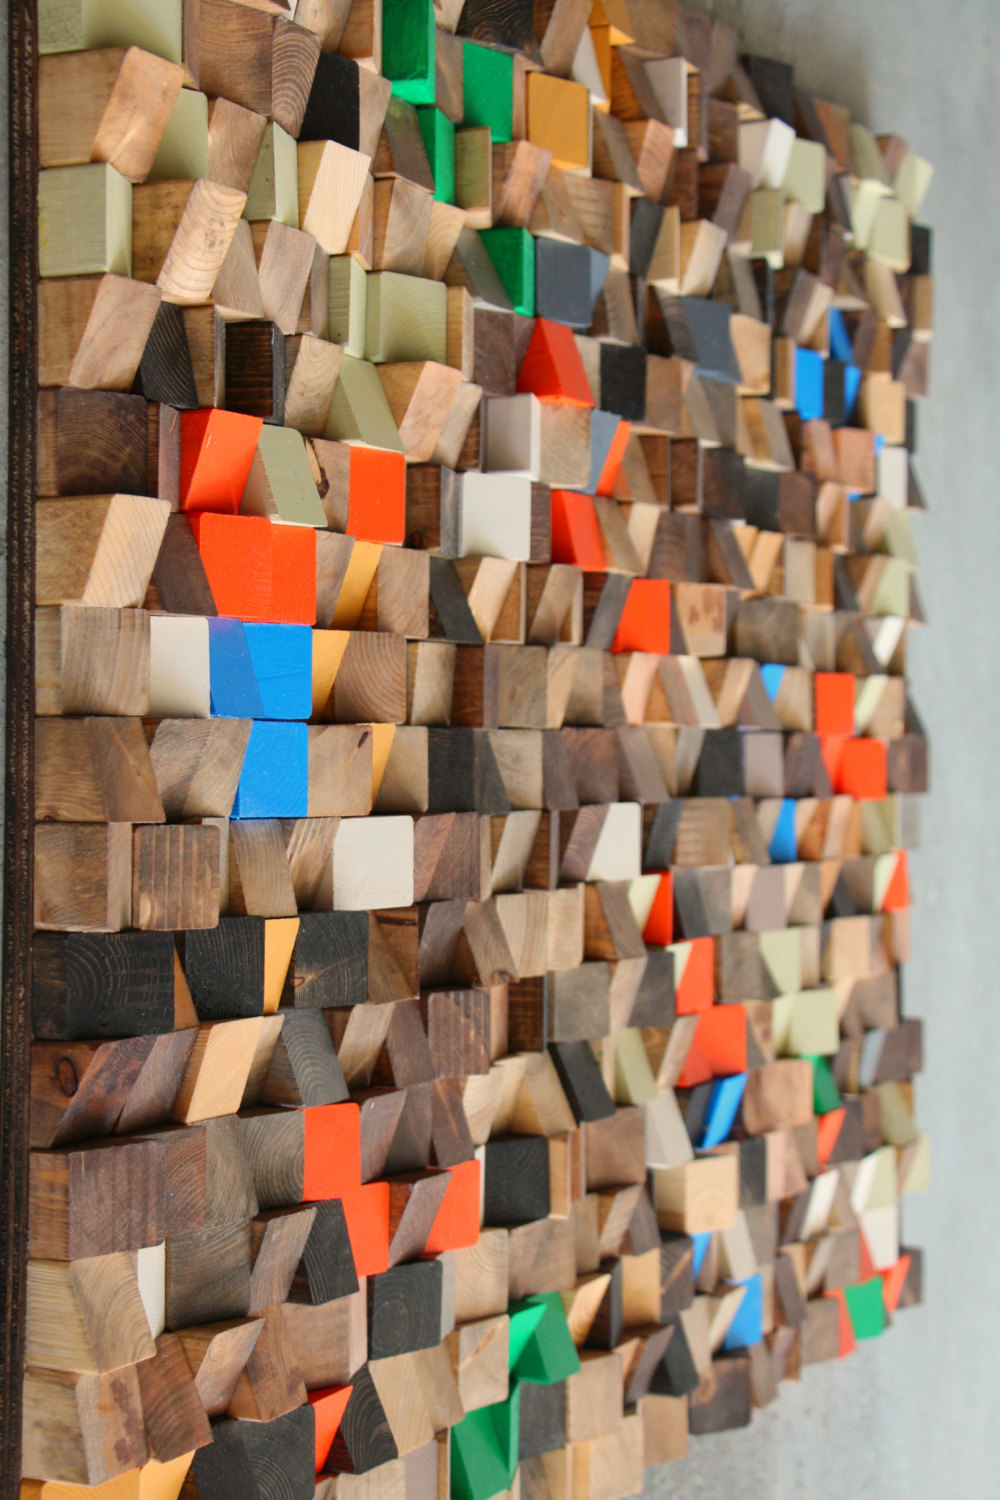 Abstract Wood Art : abstract, Large, Sculpture,, Abstract, Reclaimed, Mosaic,, Geometric, Rustic, Gbandwood, Wooden